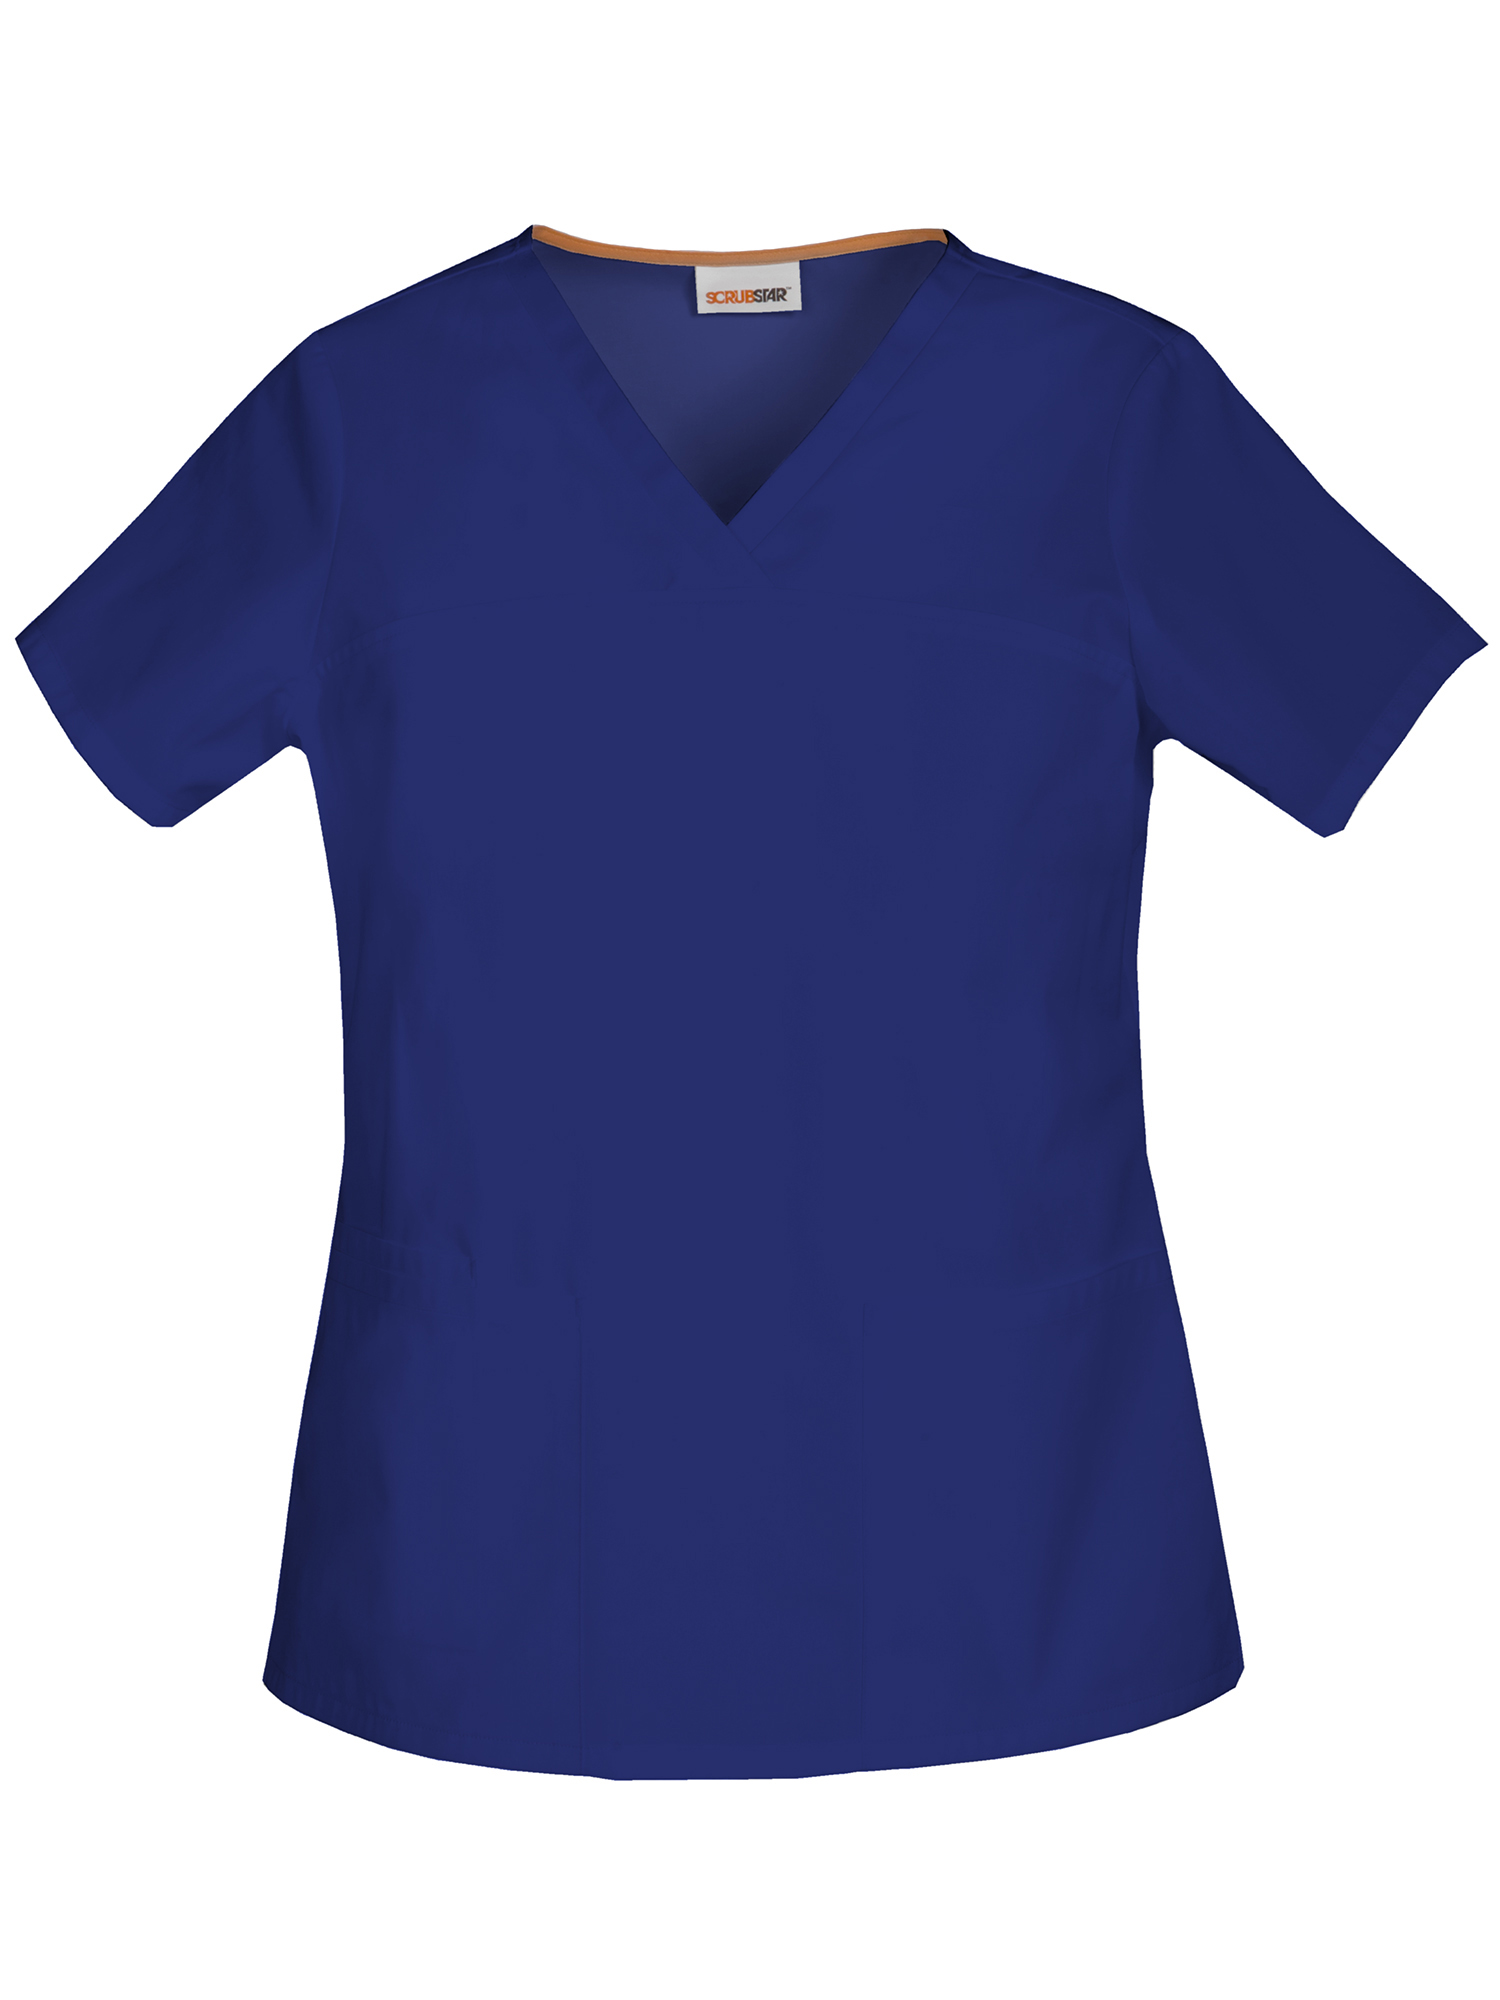 Scrubstar Women's Core Essentials Brushed Poplin V-Neck Scrub Top